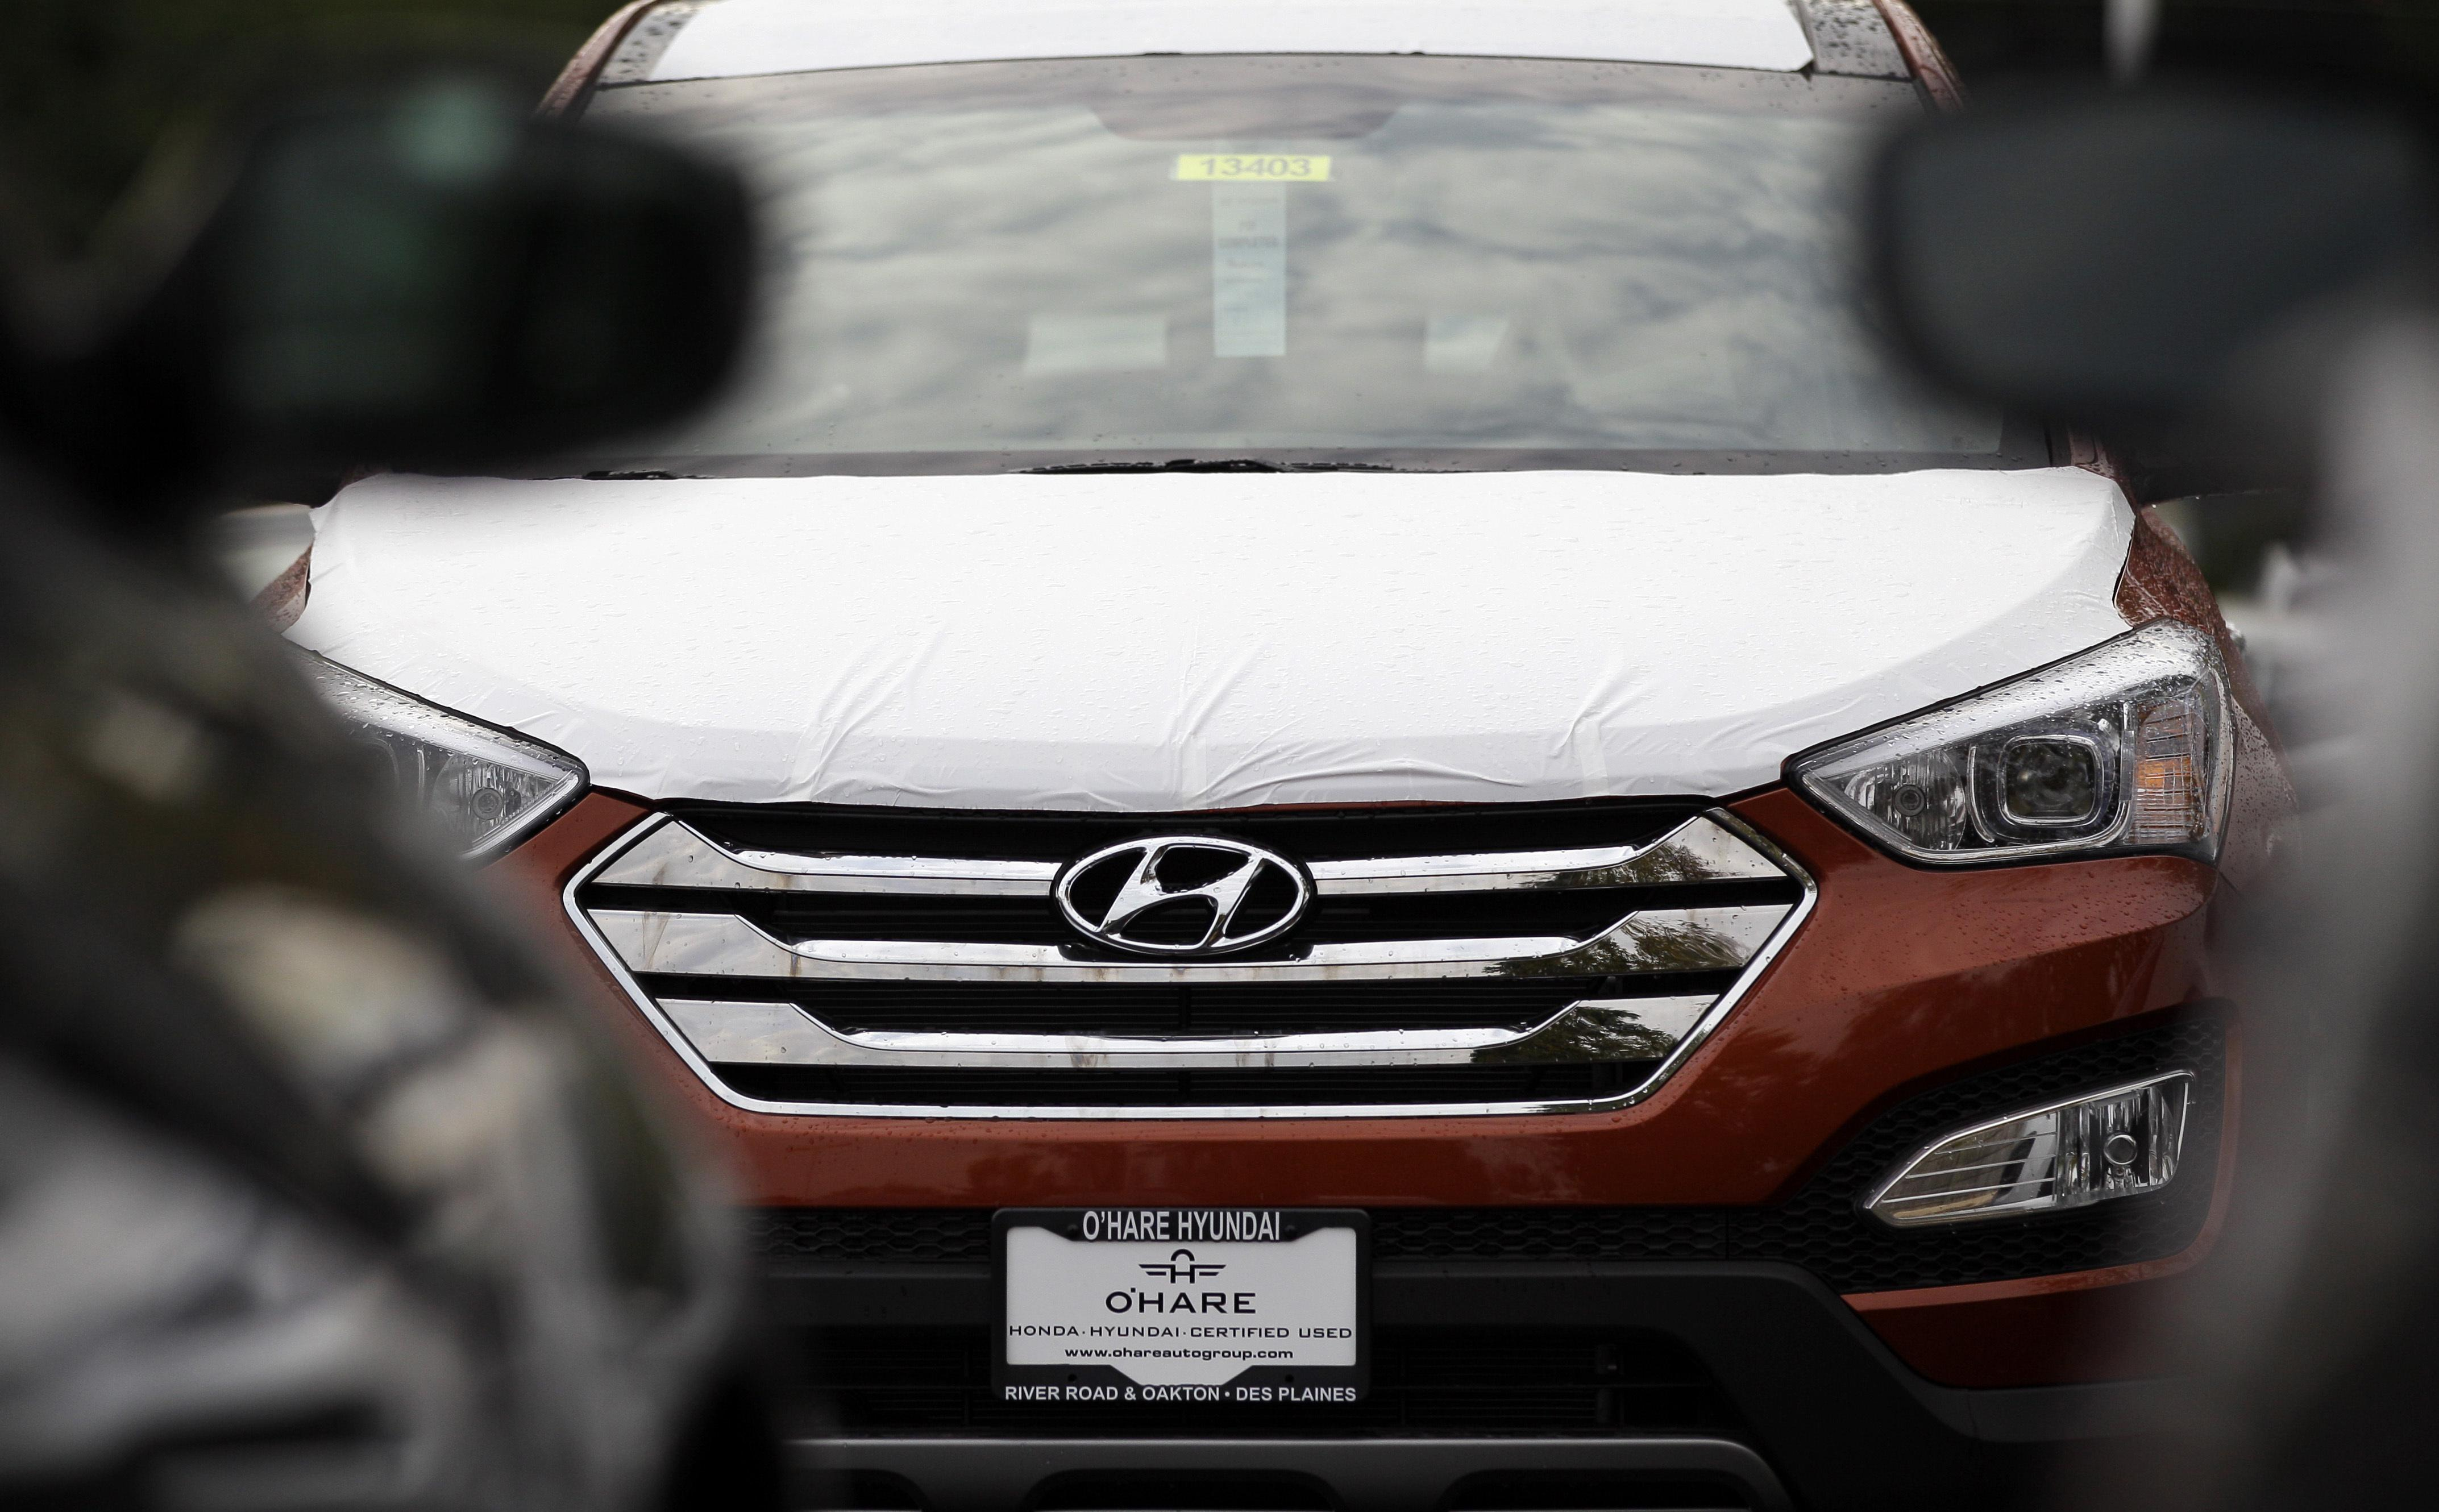 U S Safety Agency Opens Probes Into Hyundai And Kia Fires